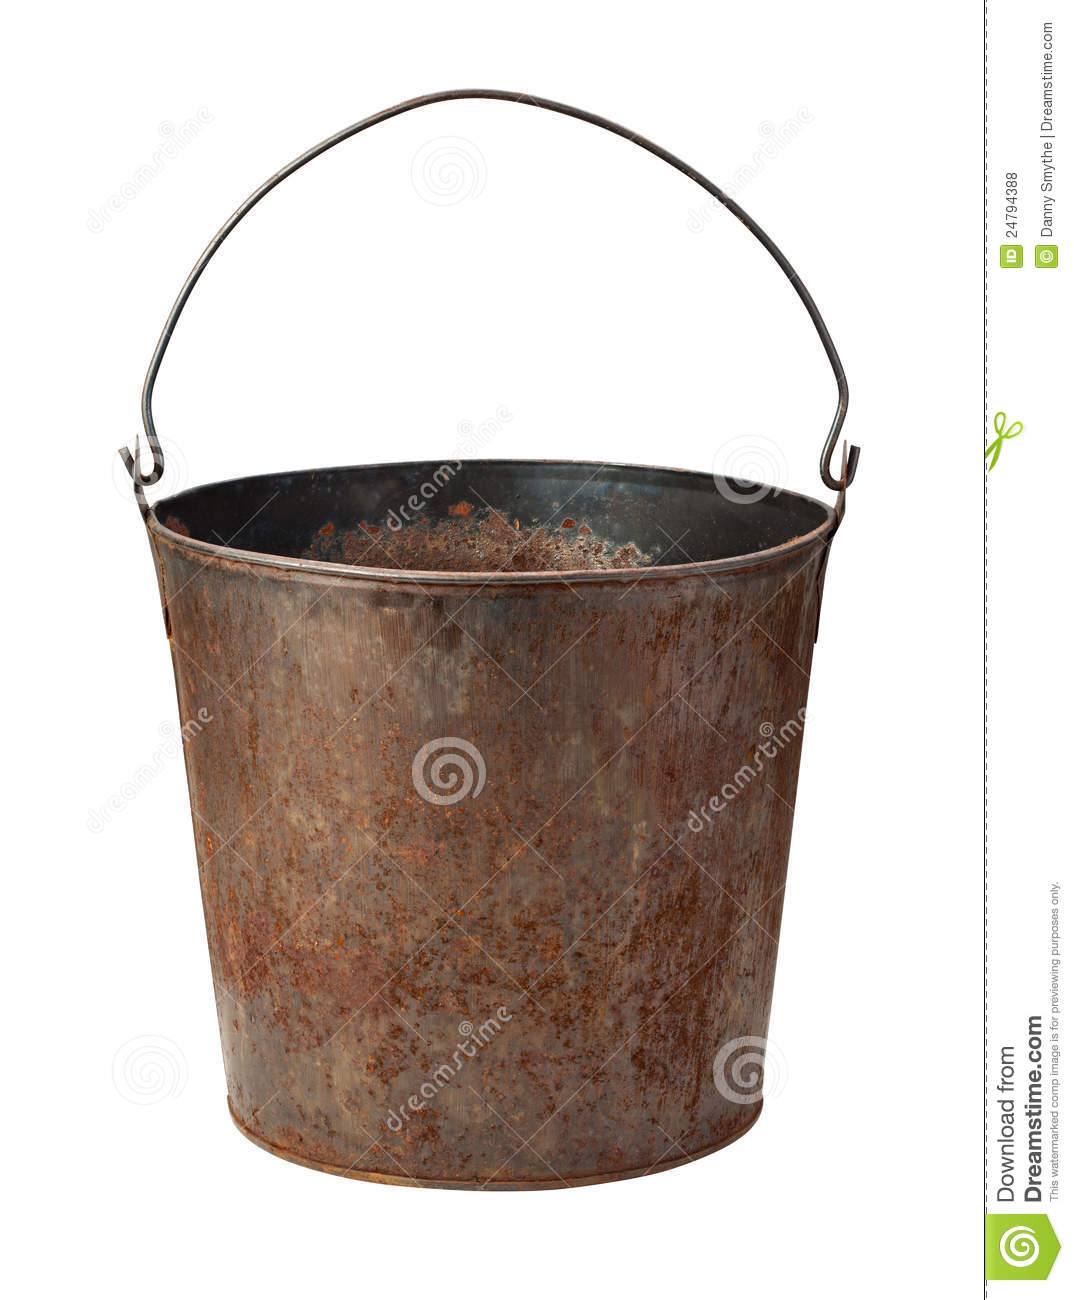 Old rusty bucket isolated with clipping path stock photo for Old metal buckets